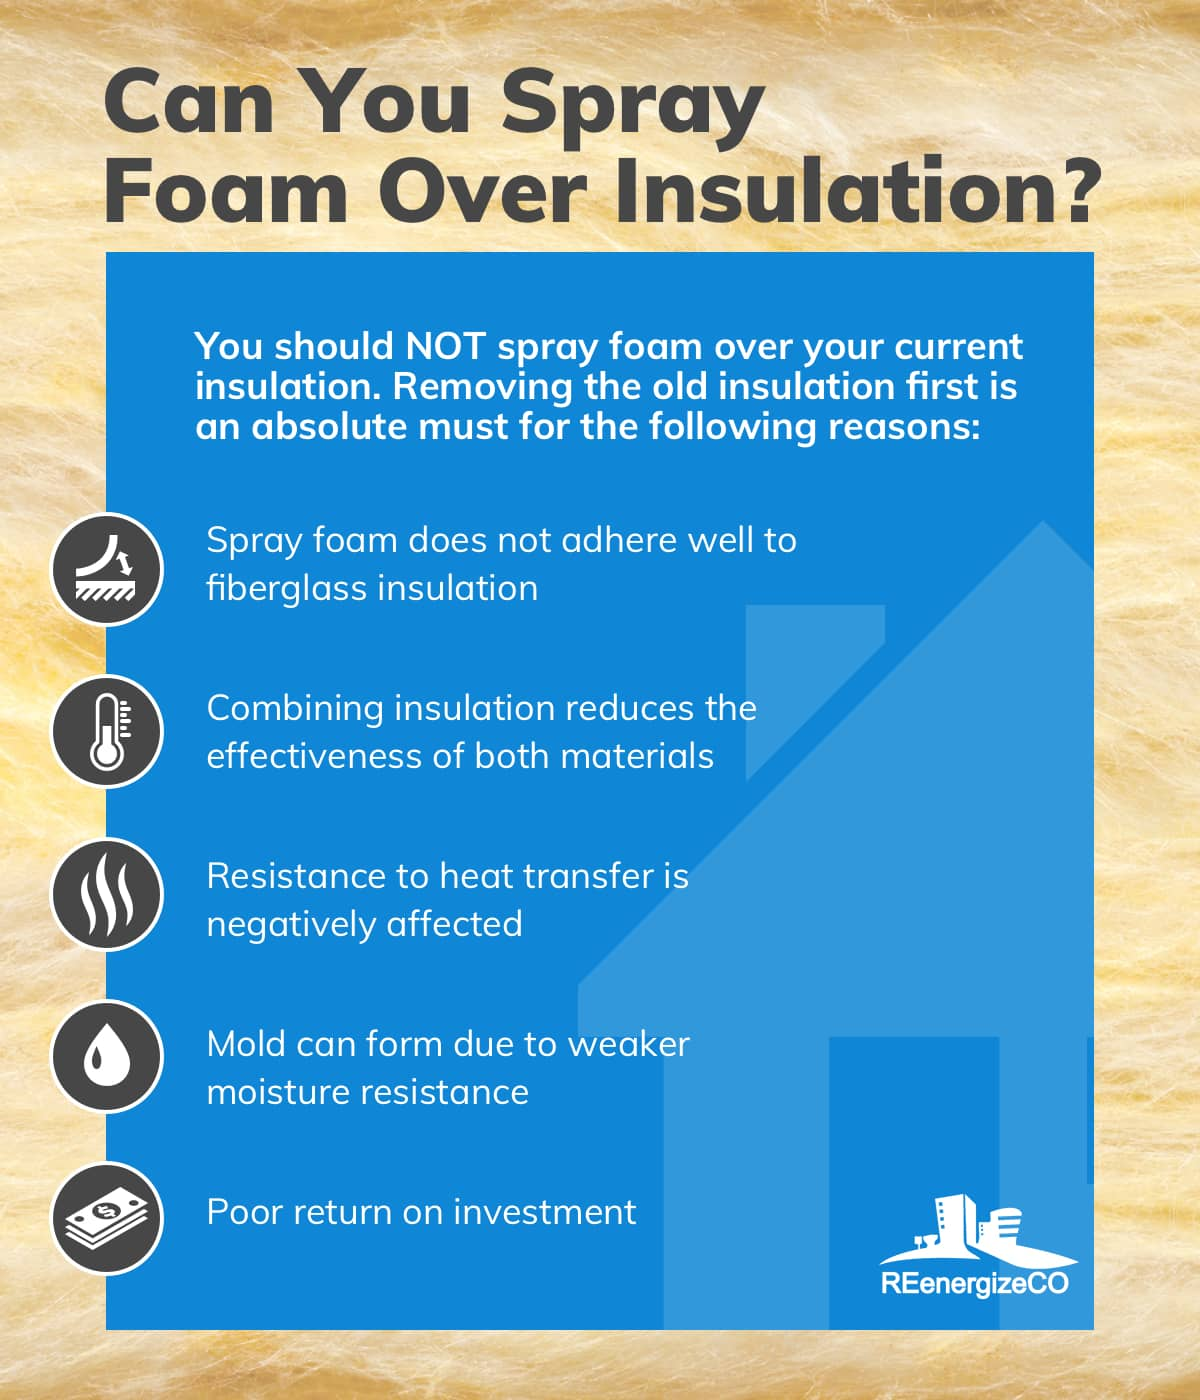 Can I Install Spray Foam Over Fiberglass Insulation? | REenergizeCO